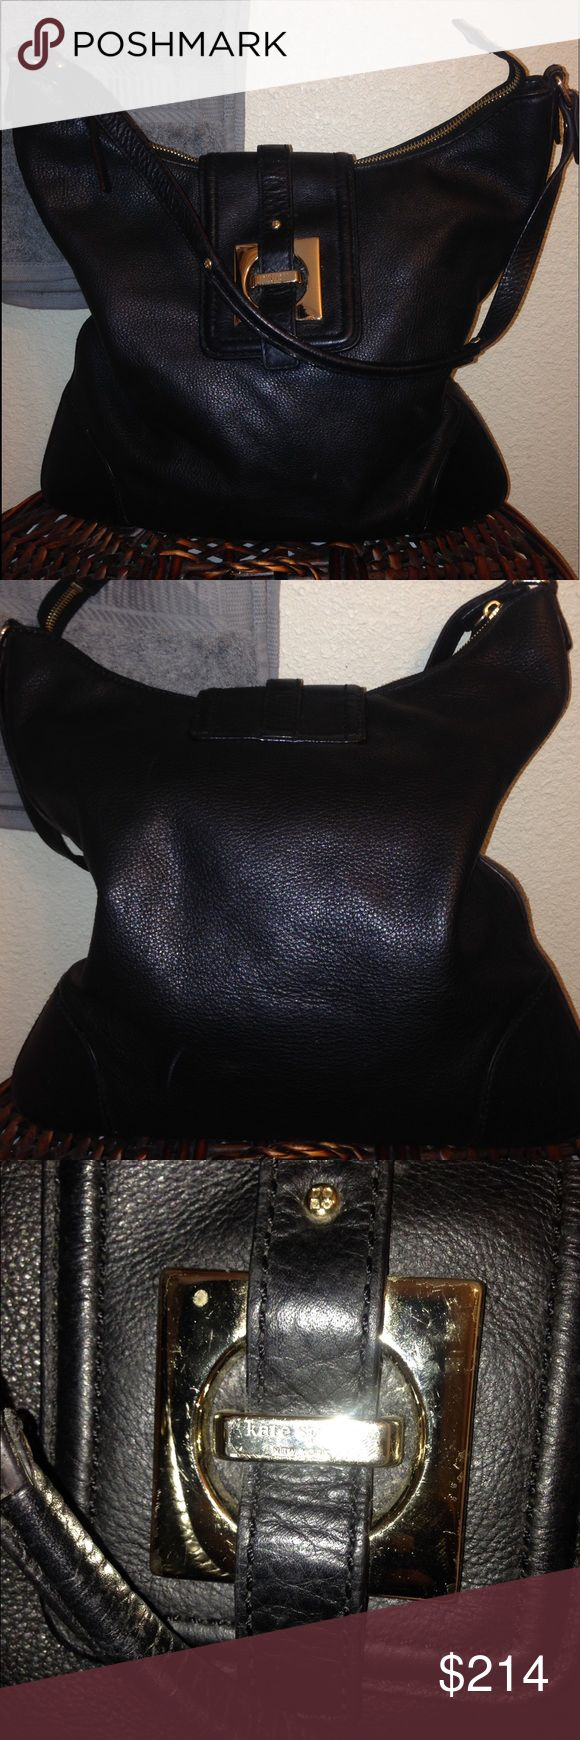 Kate Spade pebbled leather shoulder hobo bag Kate Spade pebbled leather shoulder hobo bag   Preloved  Missing dust bag Corners are tight  Scuff on shoulder strap  Pipping excellent Liner whole very little dirty  Magnetic snap closure kate spade Bags Hobos